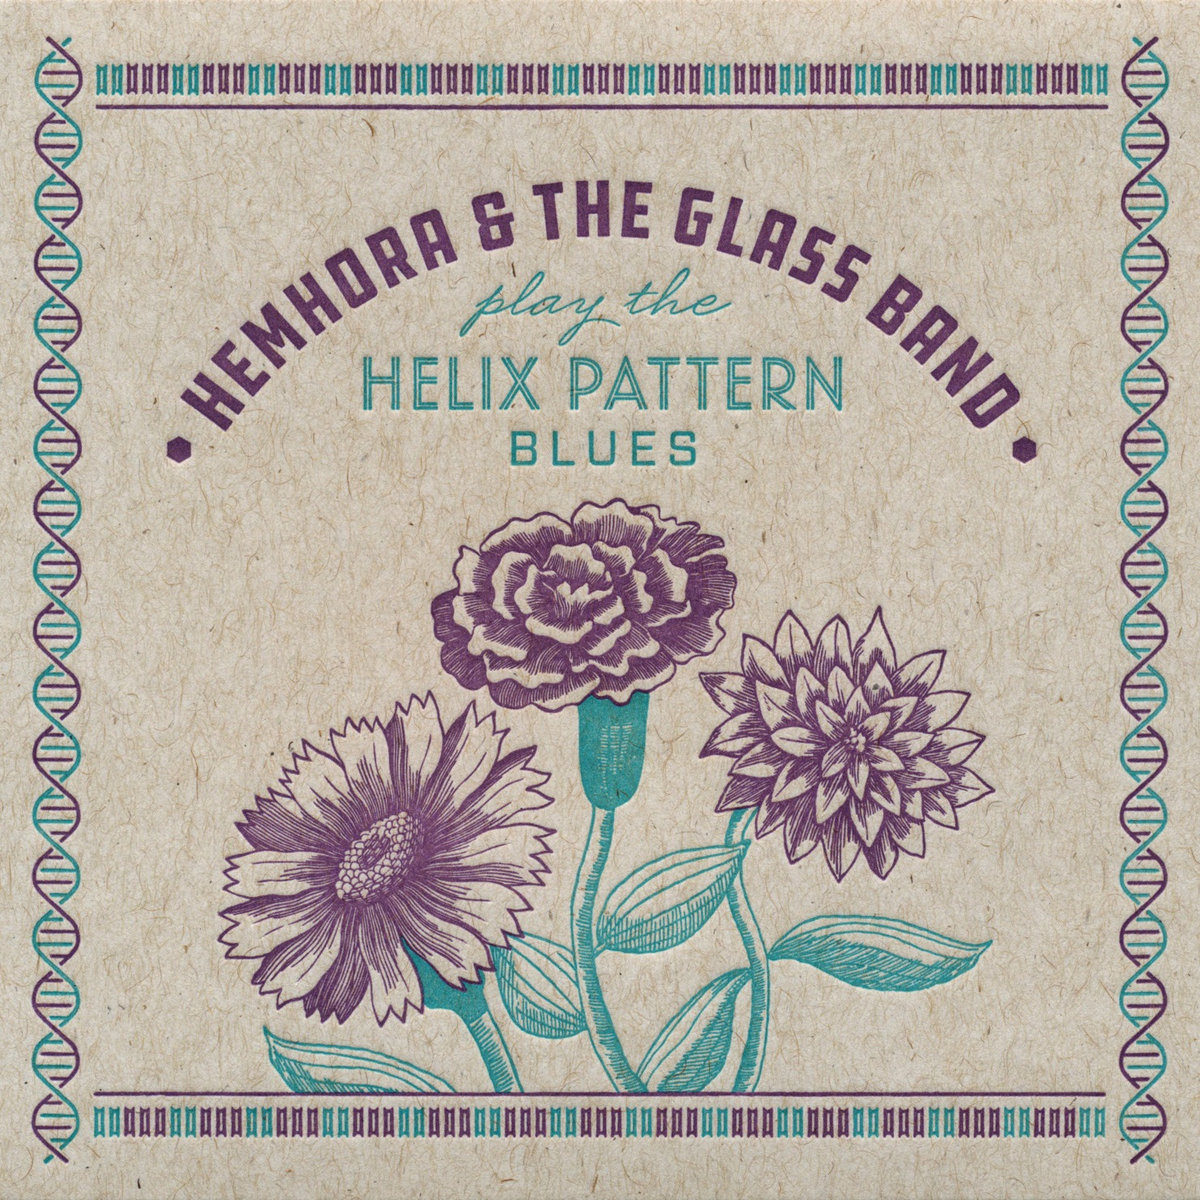 Hemhora and the Glass Band drop Helix Pattern Blues EP